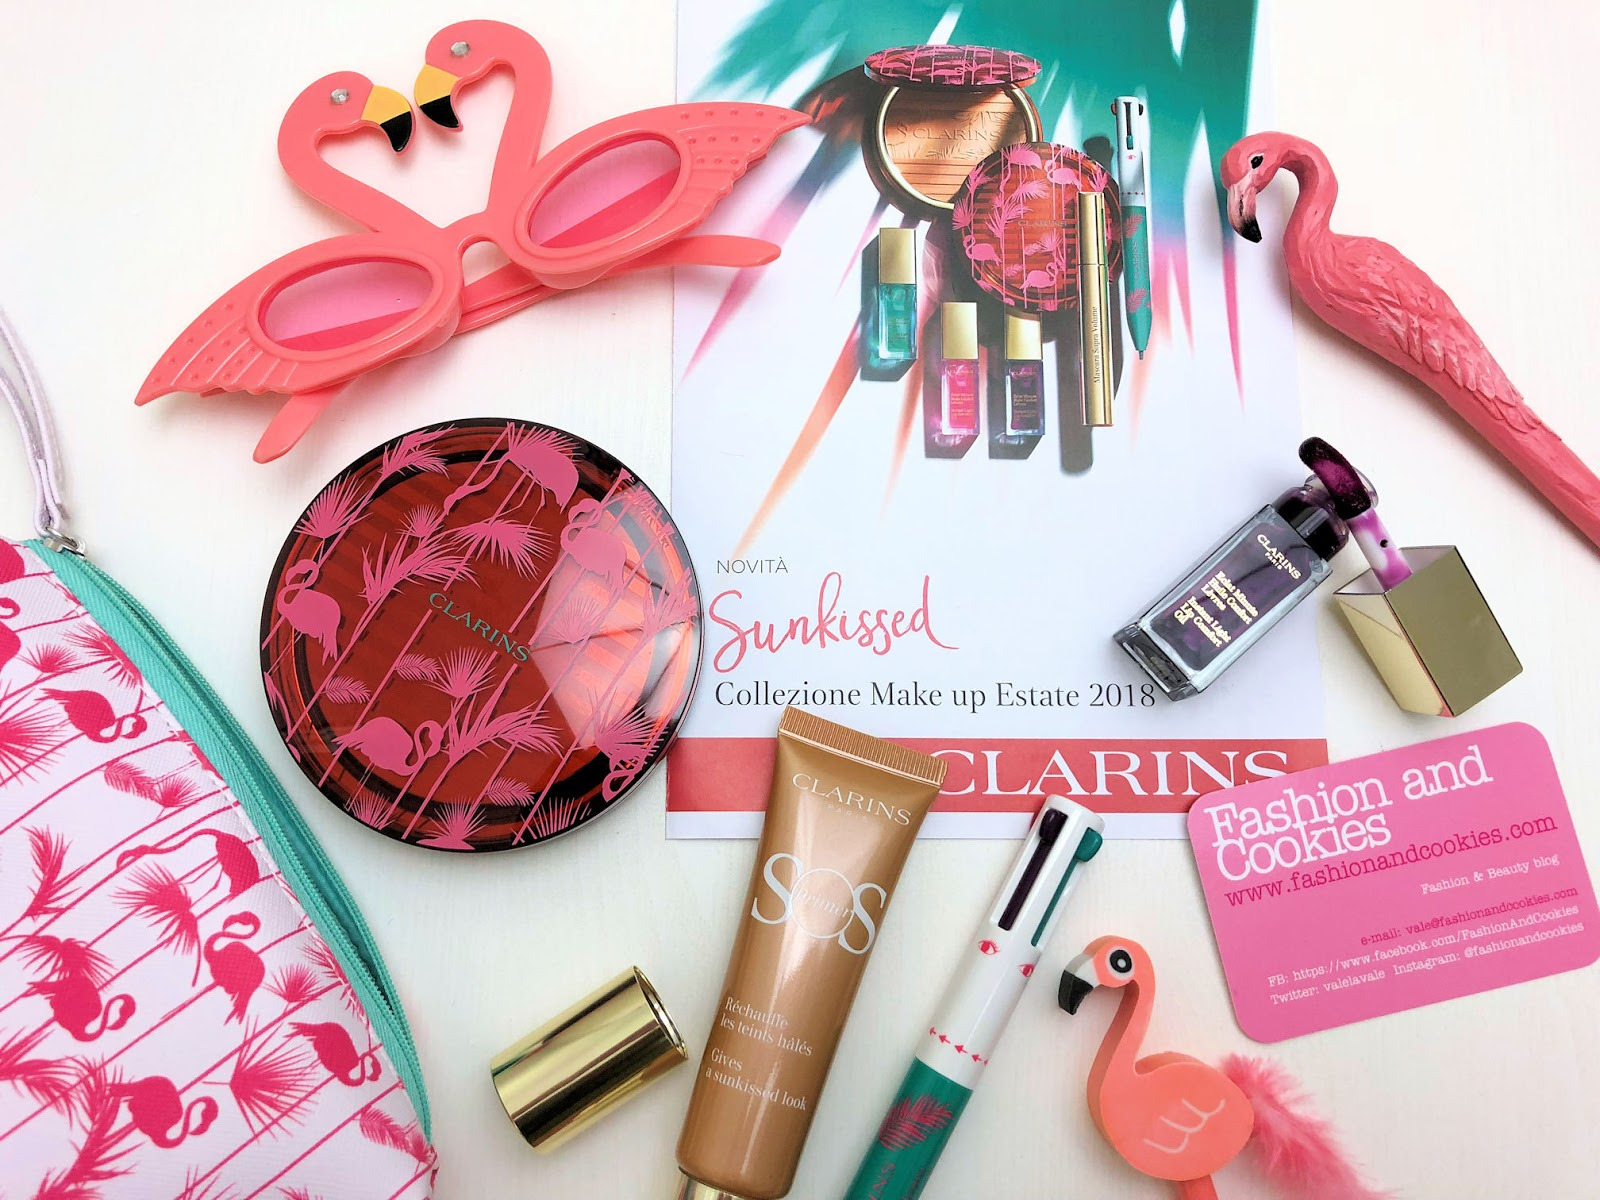 Clarins collezione makeup Estate 2018: Sunkissed su Fashion and Cookies fashion blog, fashion blogger style